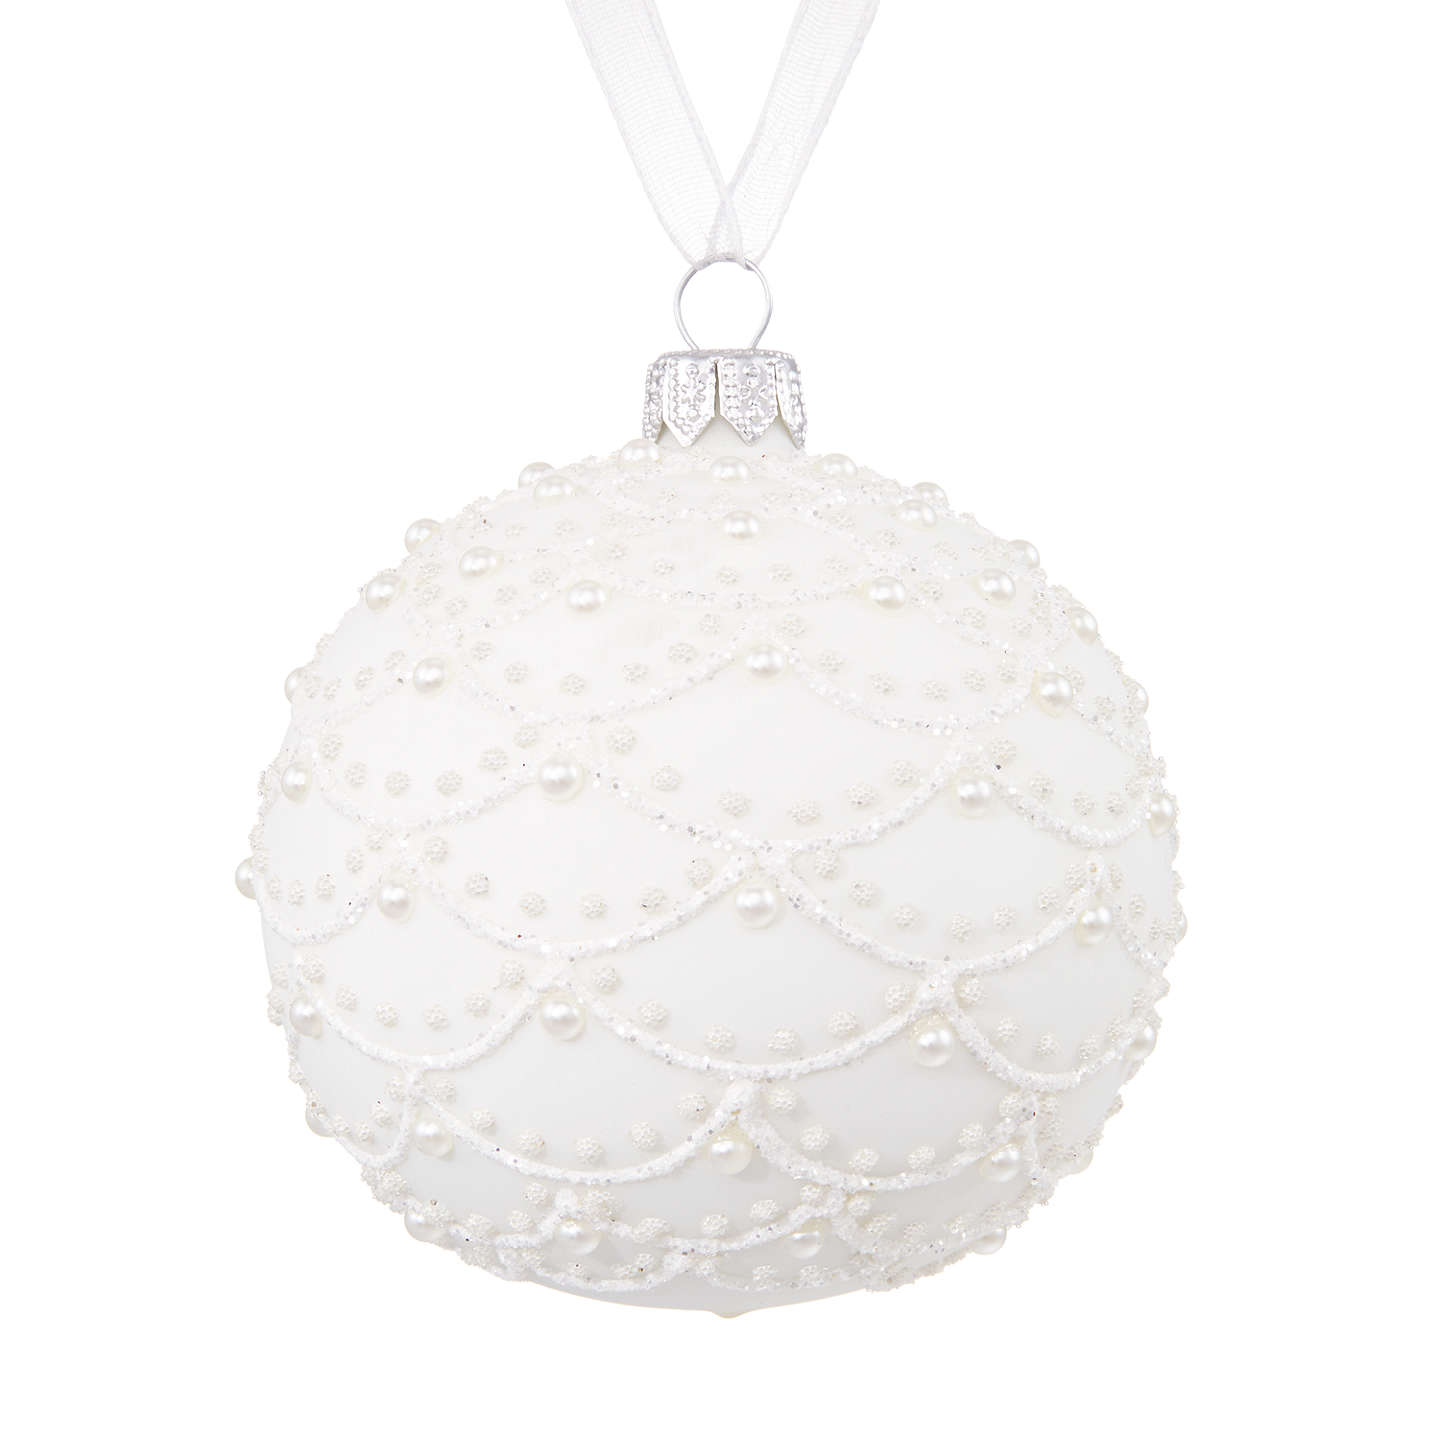 BuyJohn Lewis Winter Palace Pearl Scallop Bauble, White Online at johnlewis.com